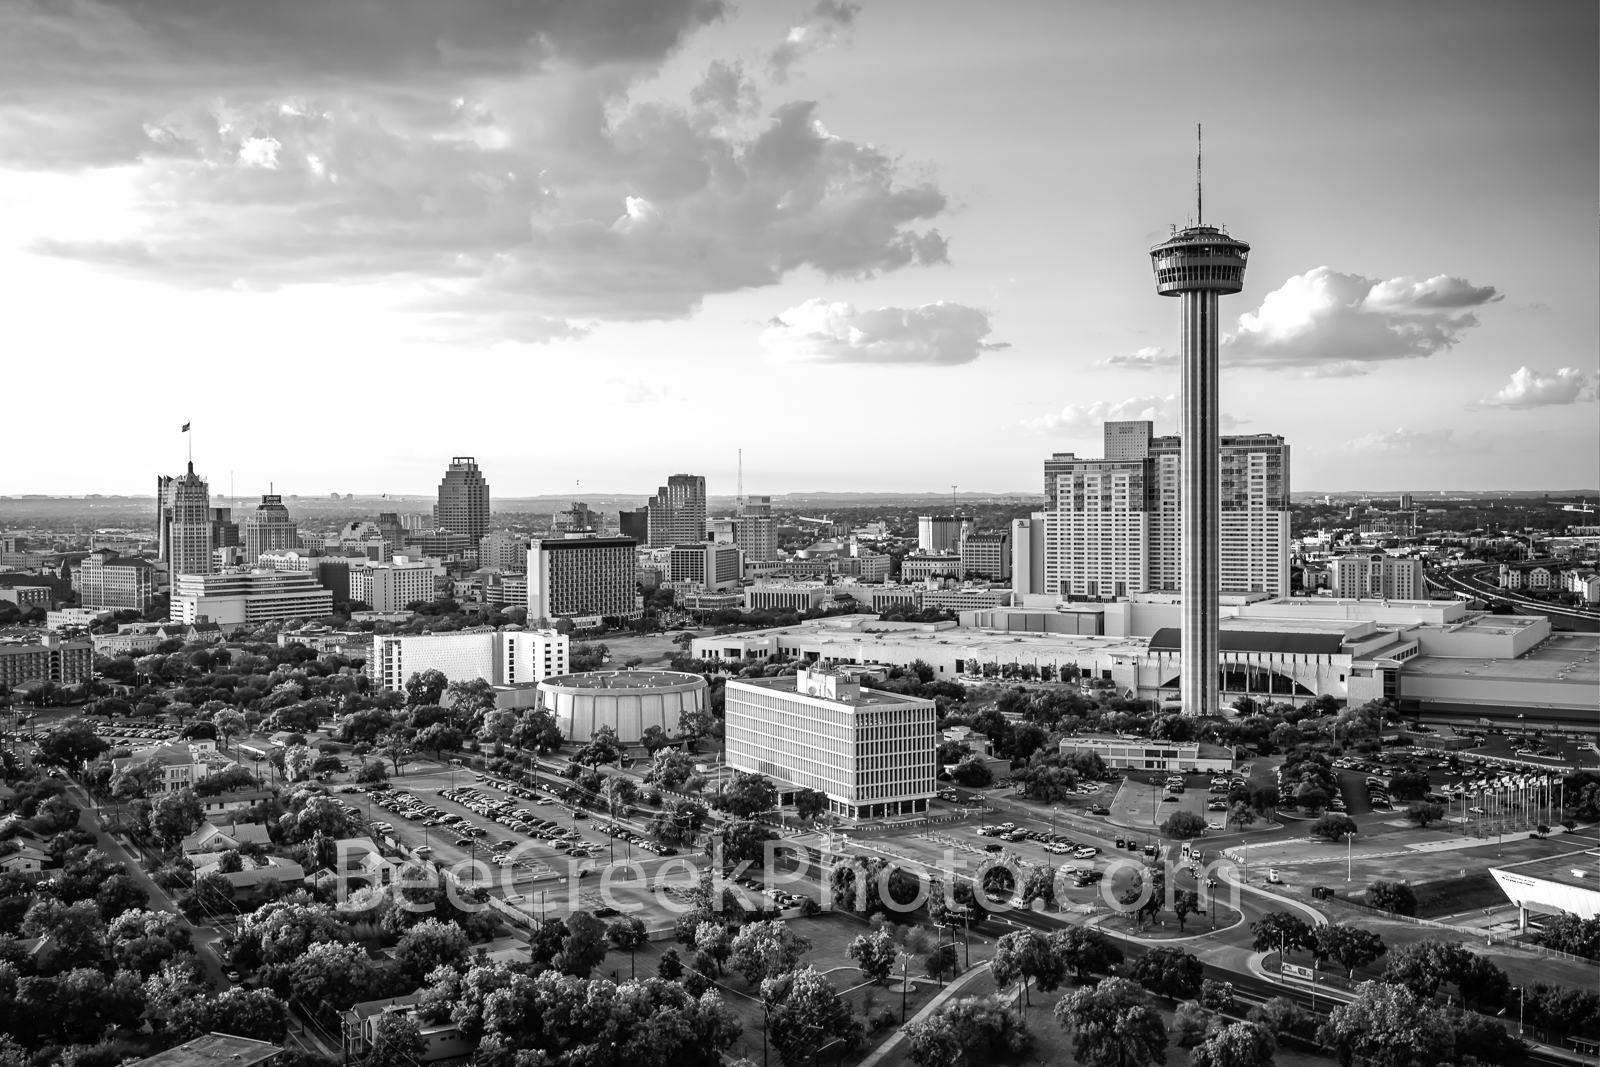 San Antonio Skyline Dusk B W  - San Antonio images on prints, canvas and metal. This is an aerial image of the San Antonio skyline...